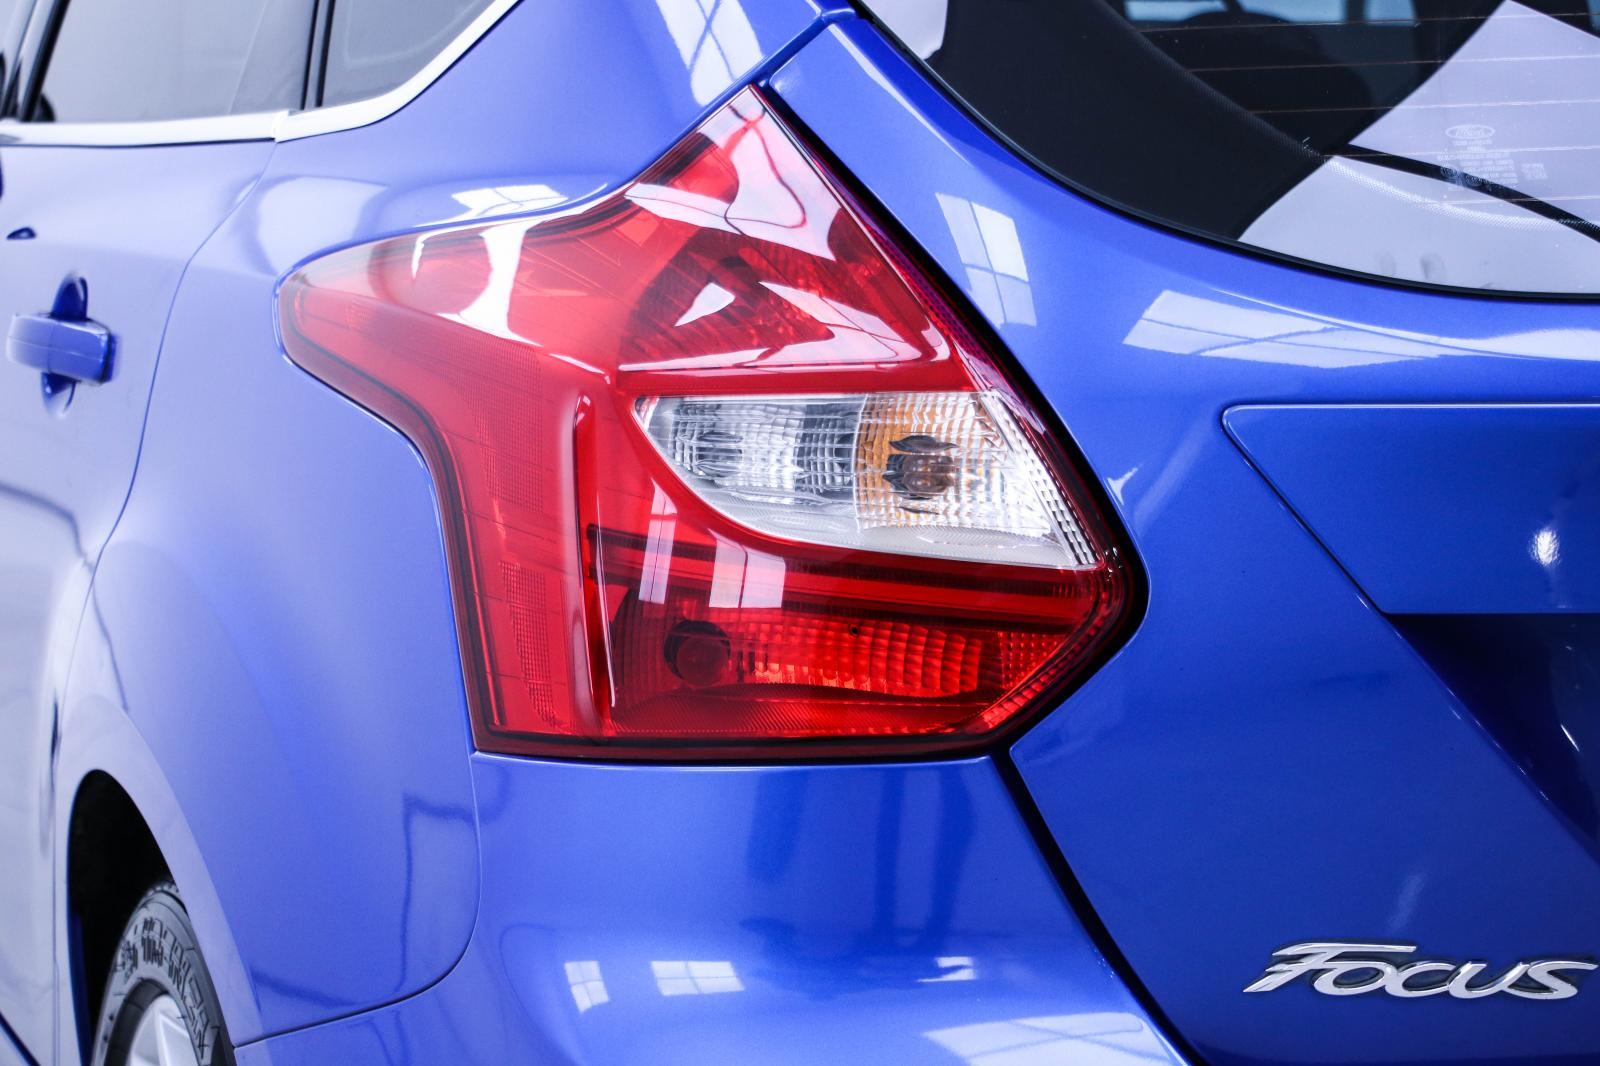 1O-48 ขายรถ Ford FOCUS 2.0 S 5DR ปี 2013